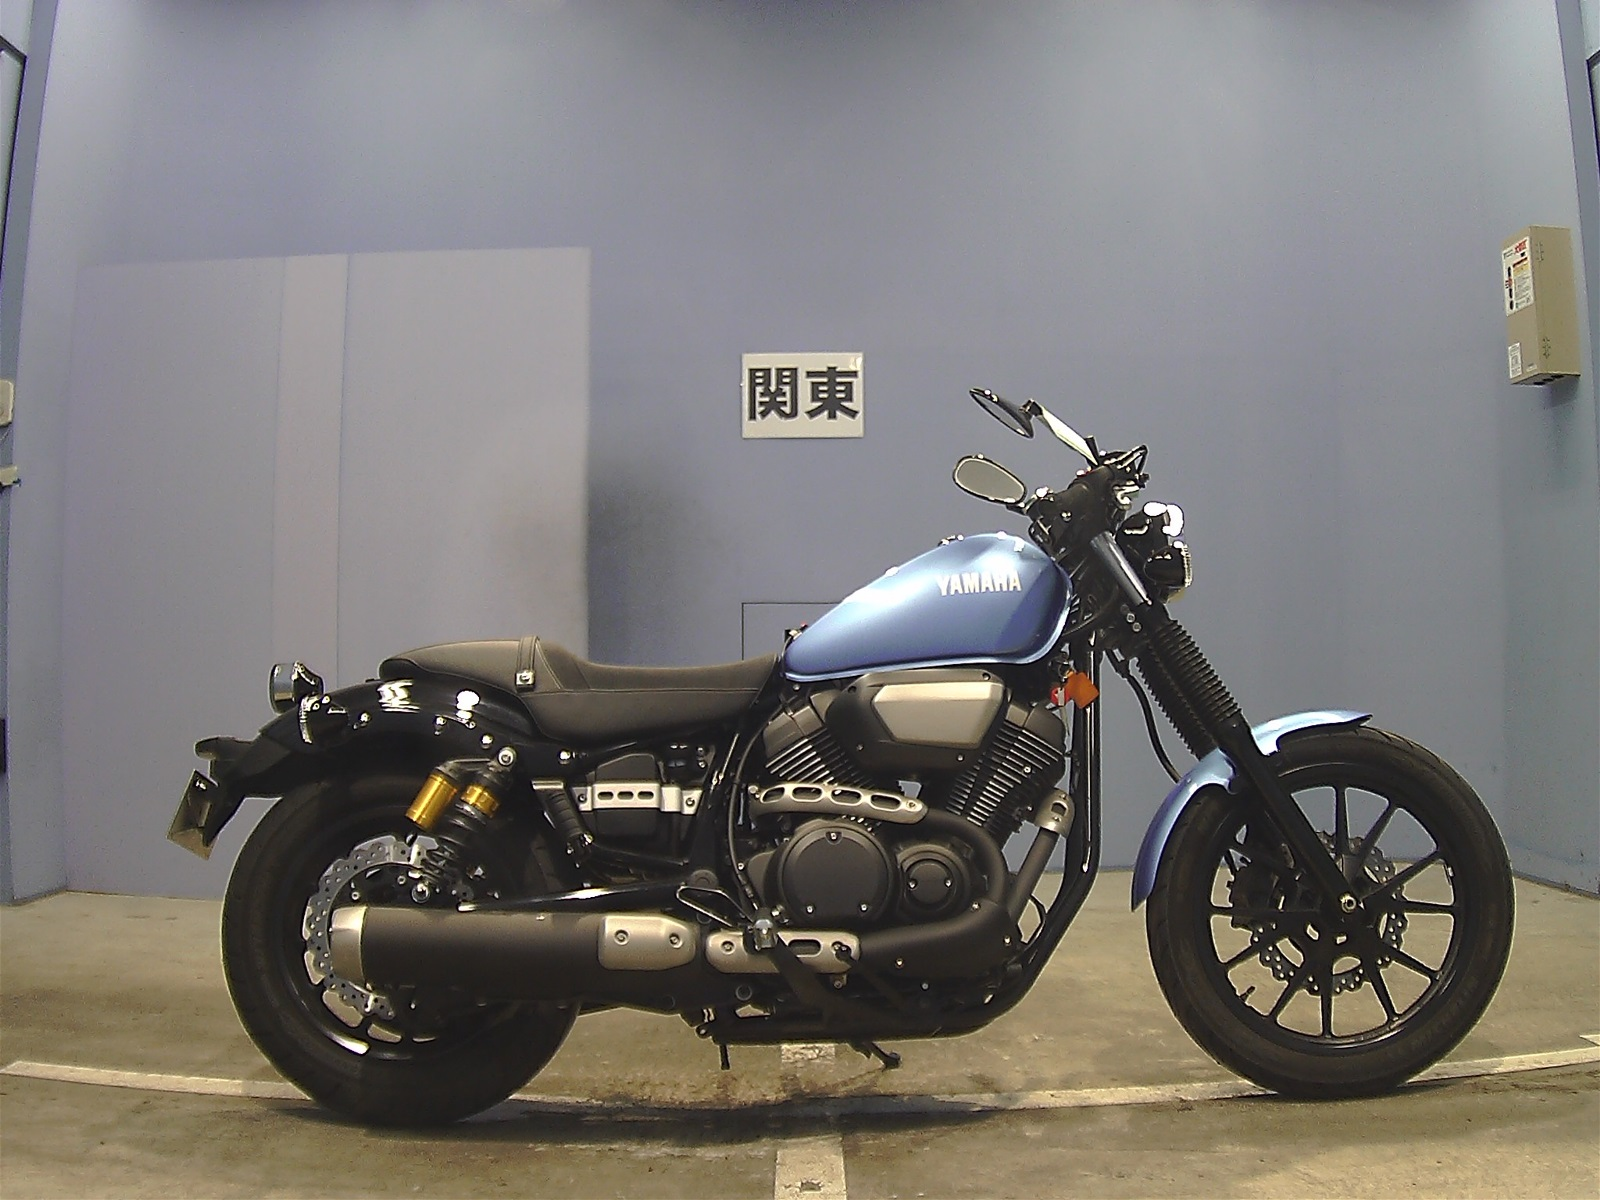 2015 yamaha bolt 950c used motorcycles japan for Yamaha bolt used for sale